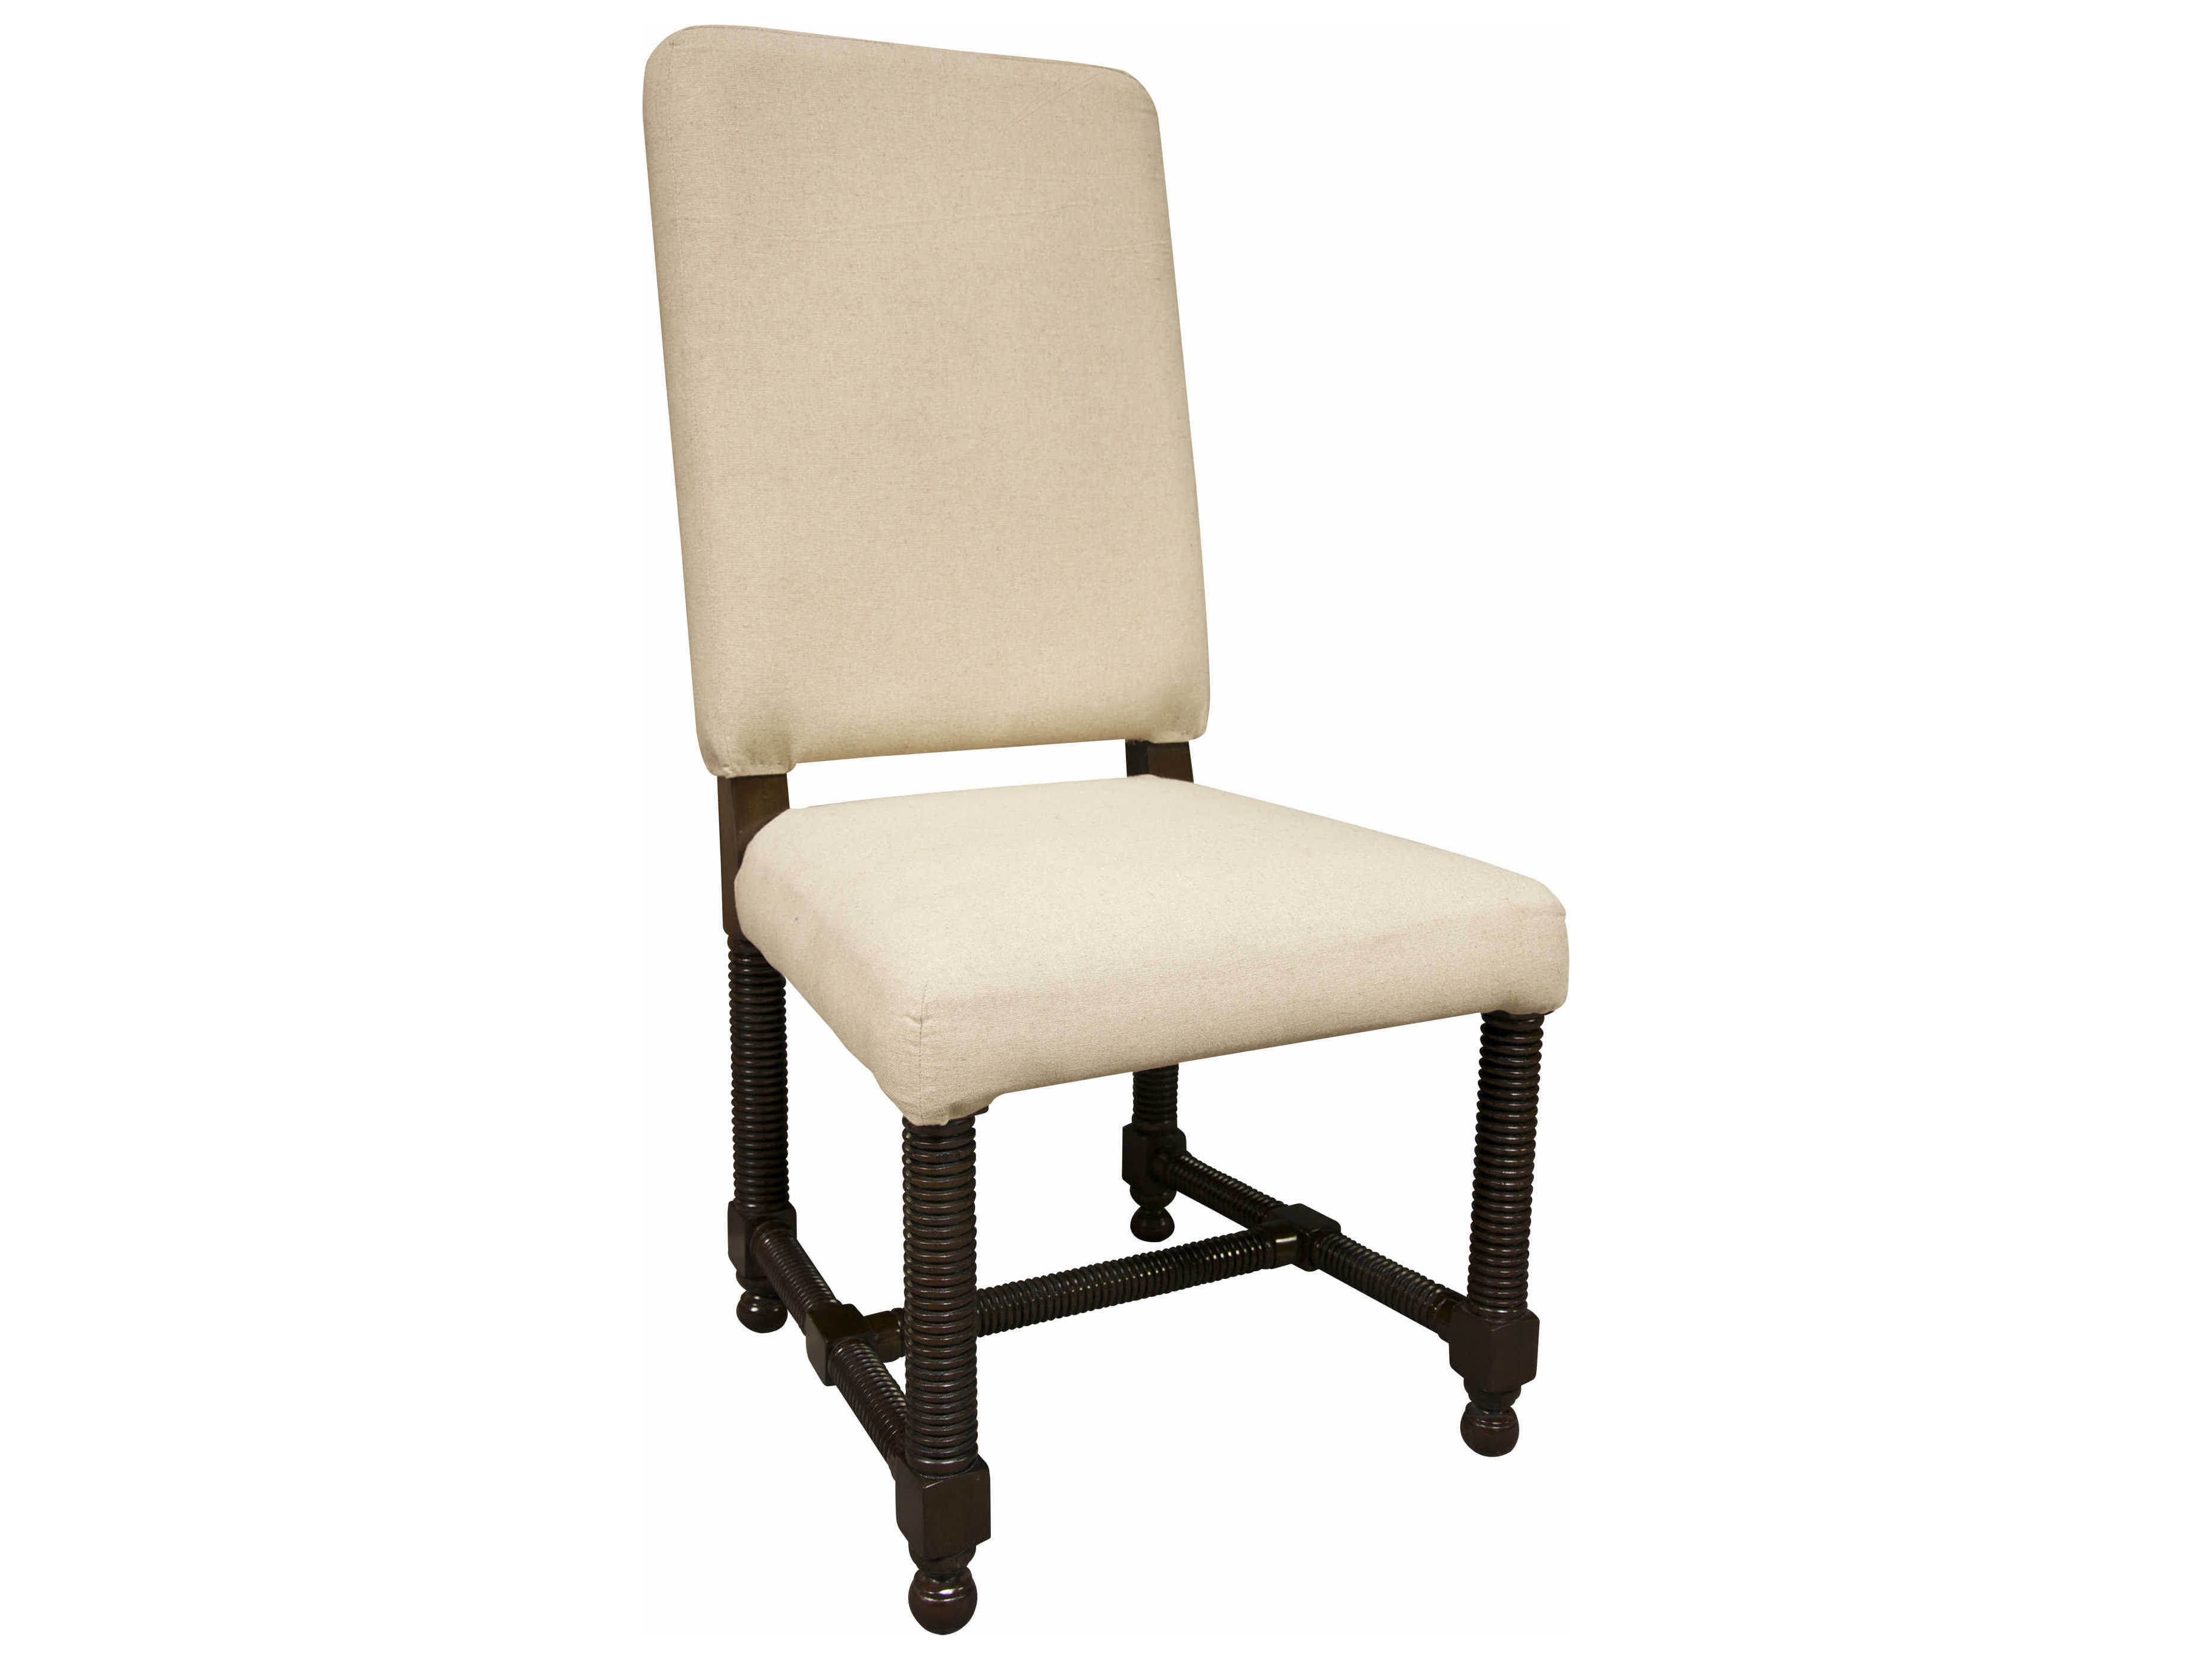 noir furniture chairs sleeper lazy boy spanish distressed brown dining side chair